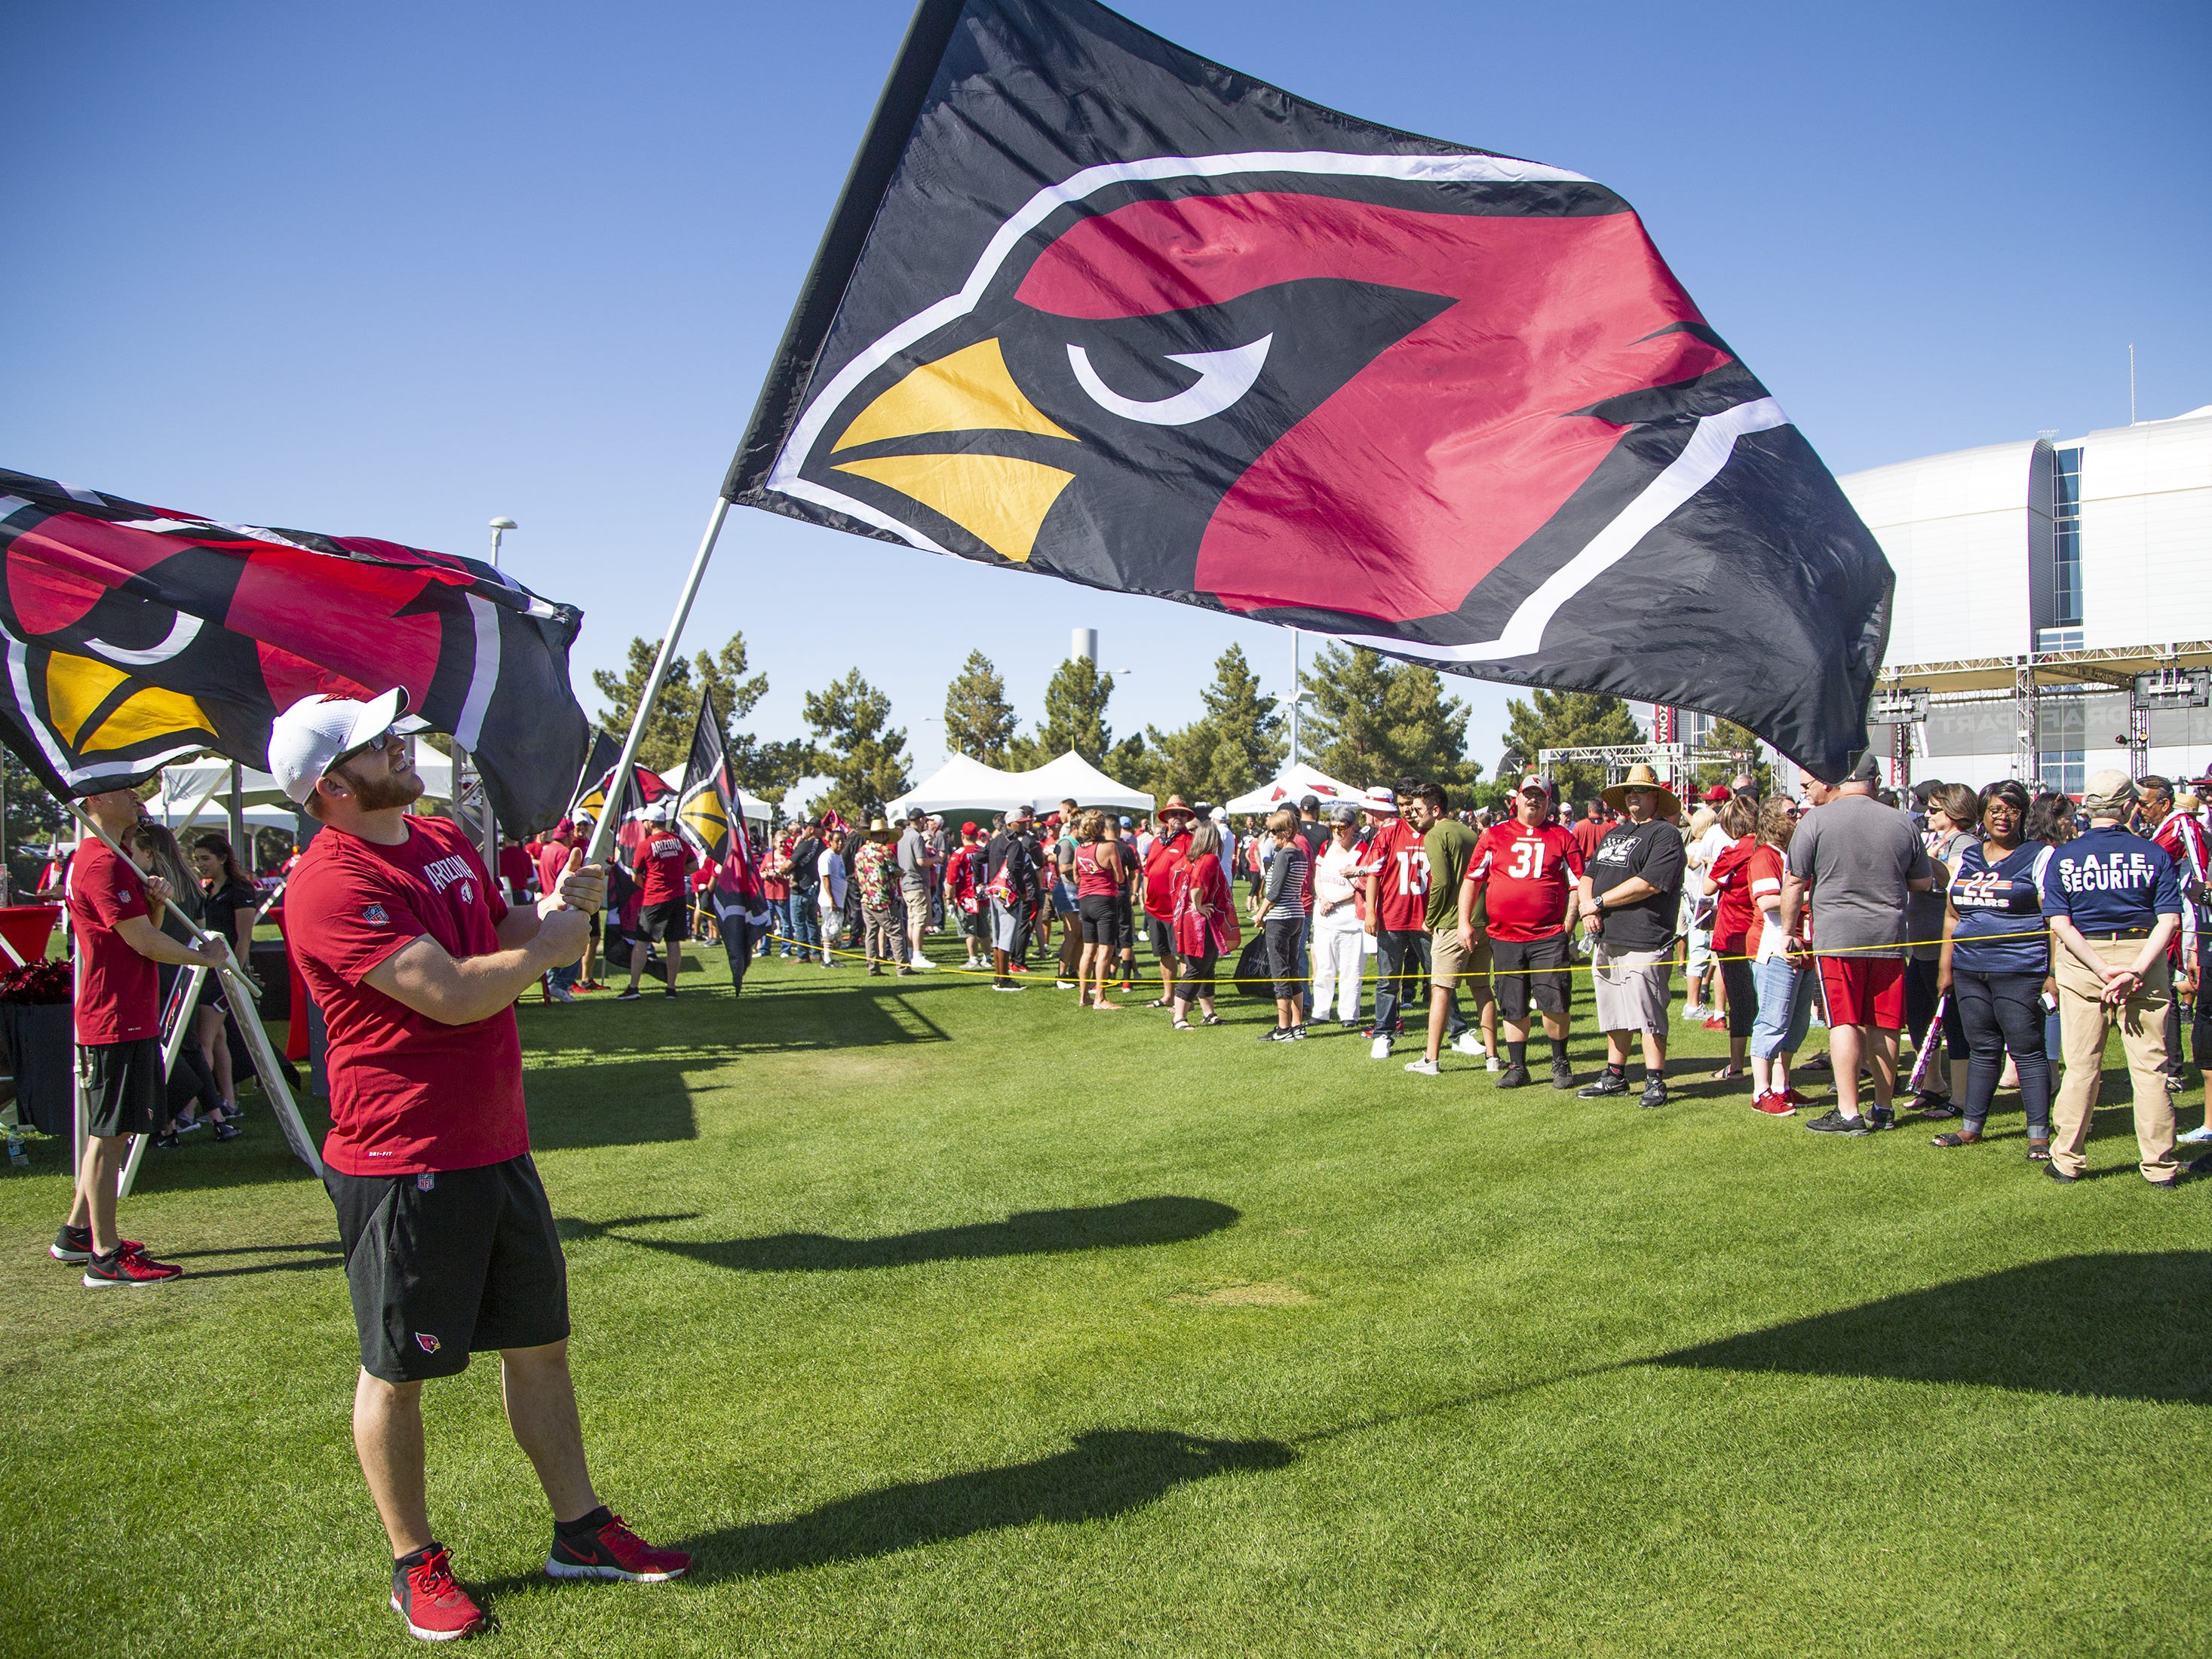 Arizona Cardinals fans arrive at the NFL Draft party on the Great Lawn outside State Farm Stadium, Thursday, April 25, 2019.